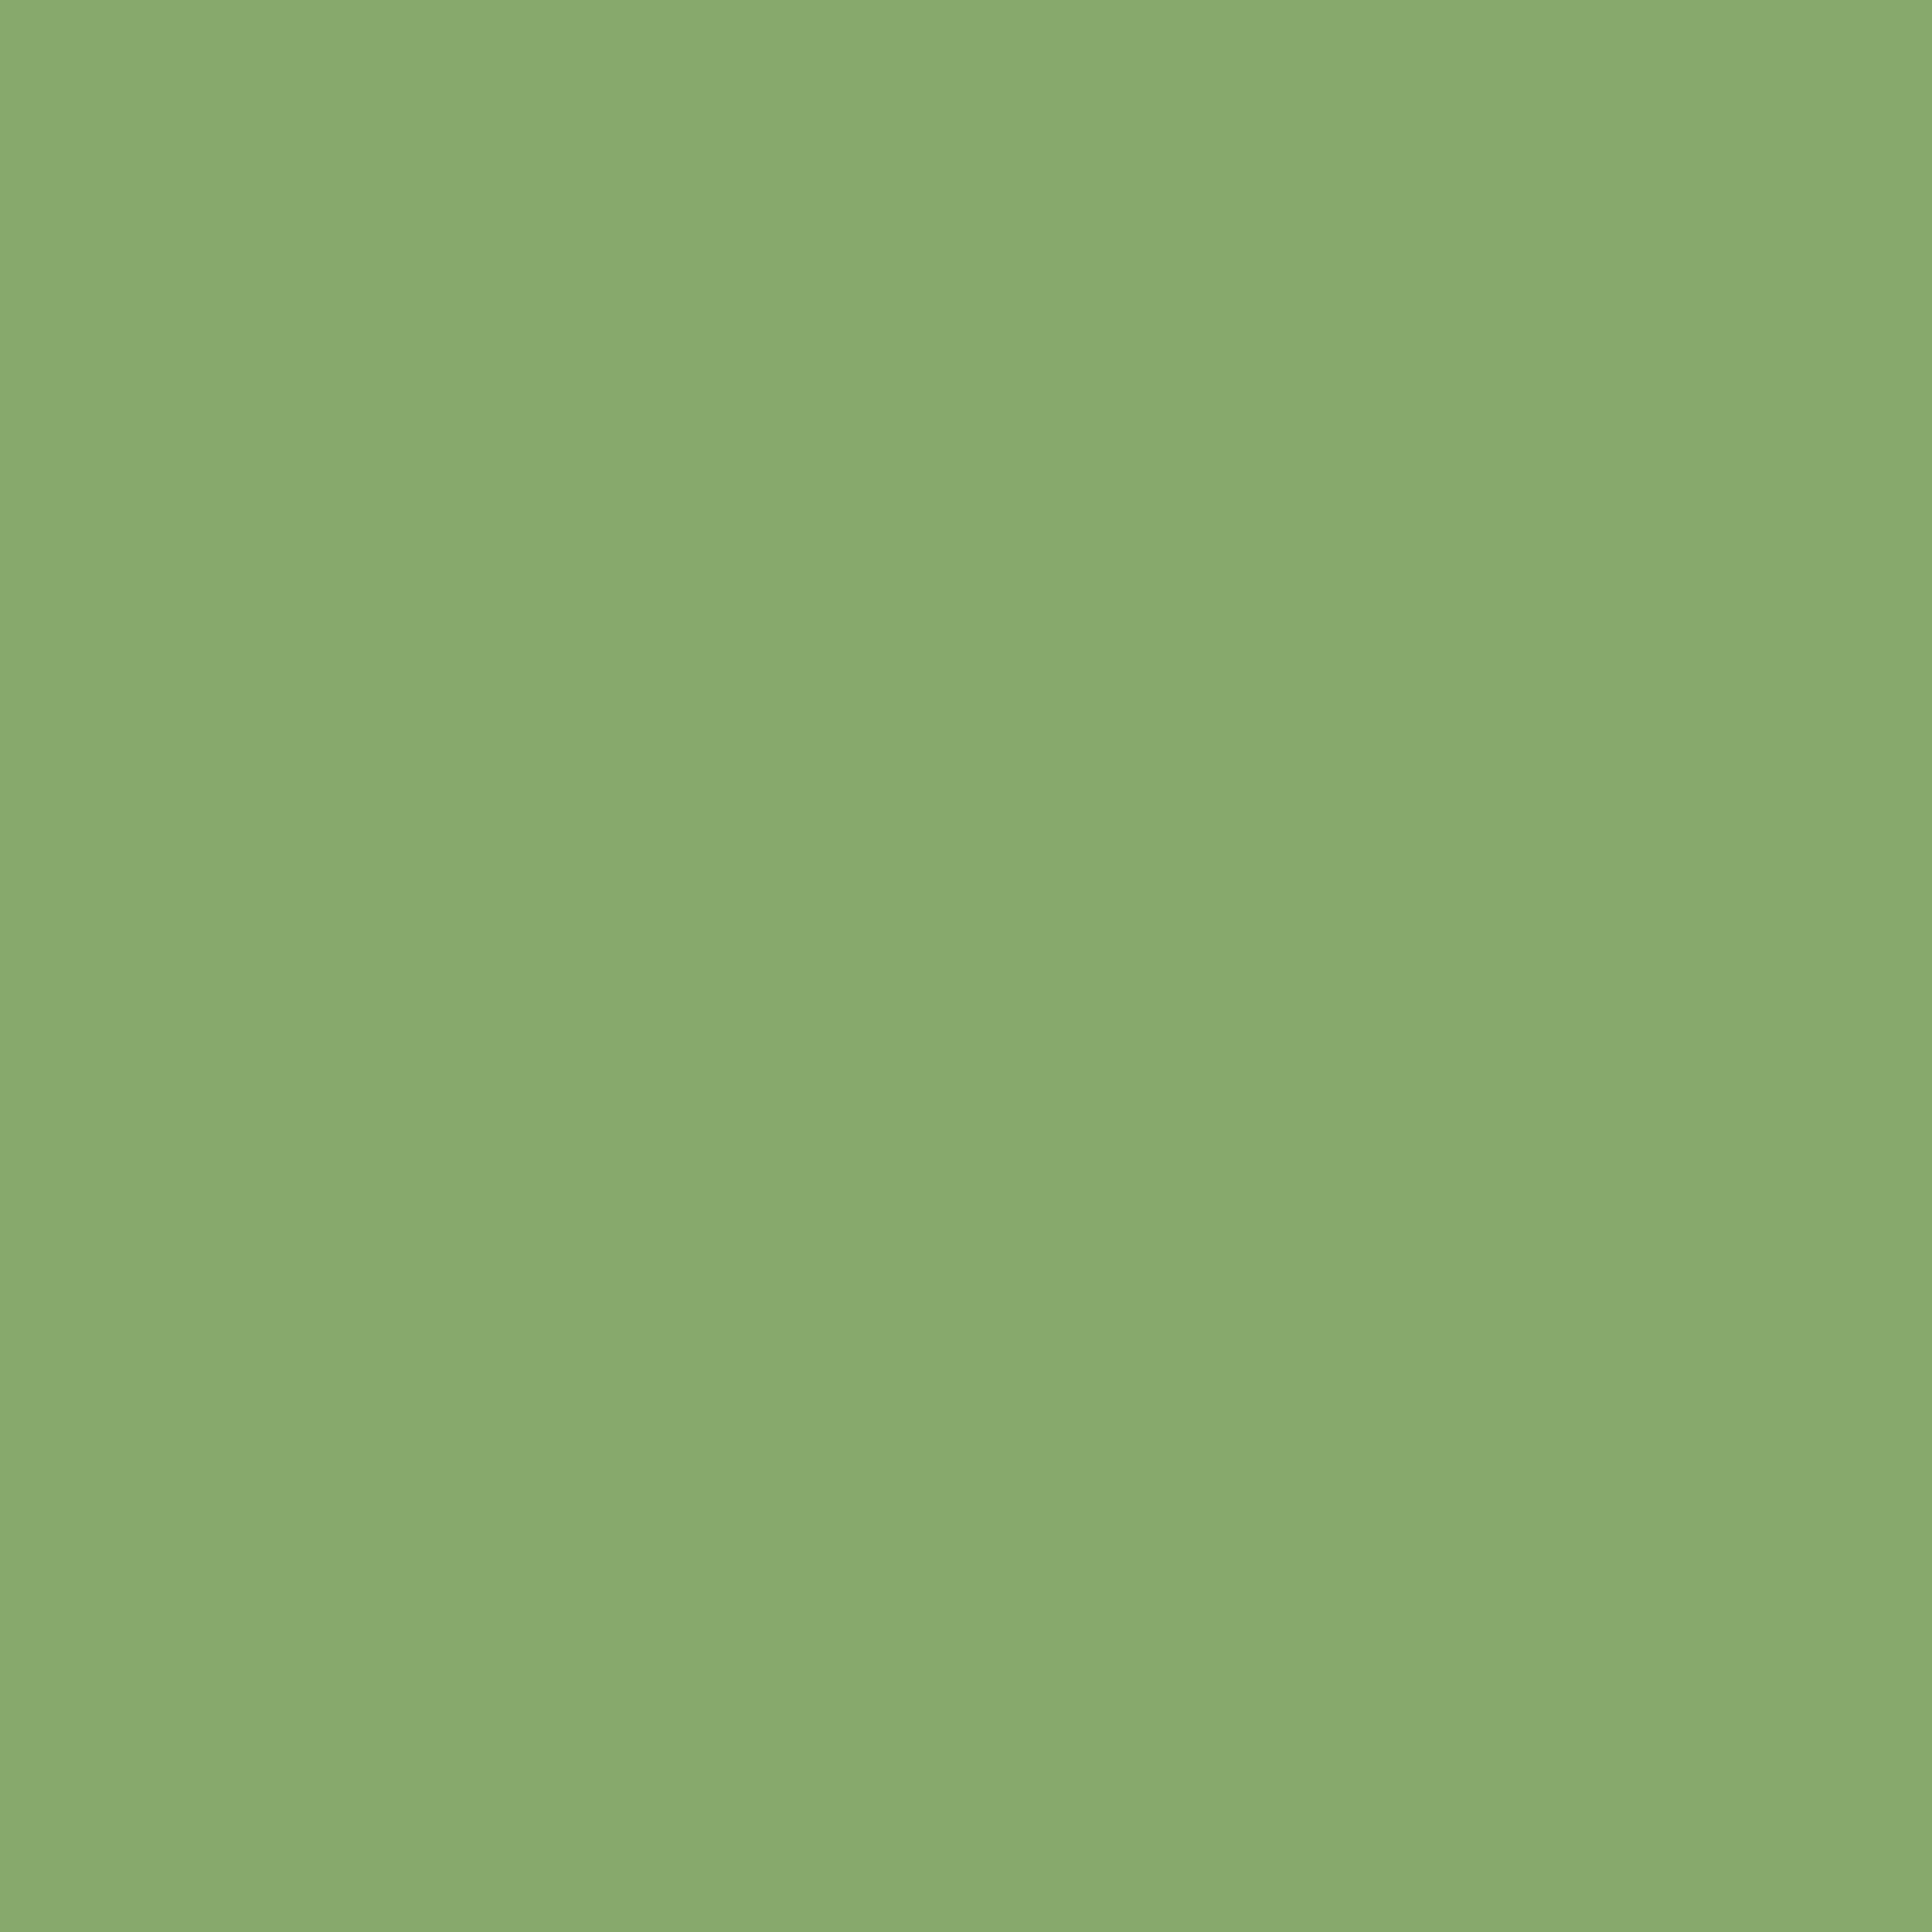 3600x3600 Asparagus Solid Color Background